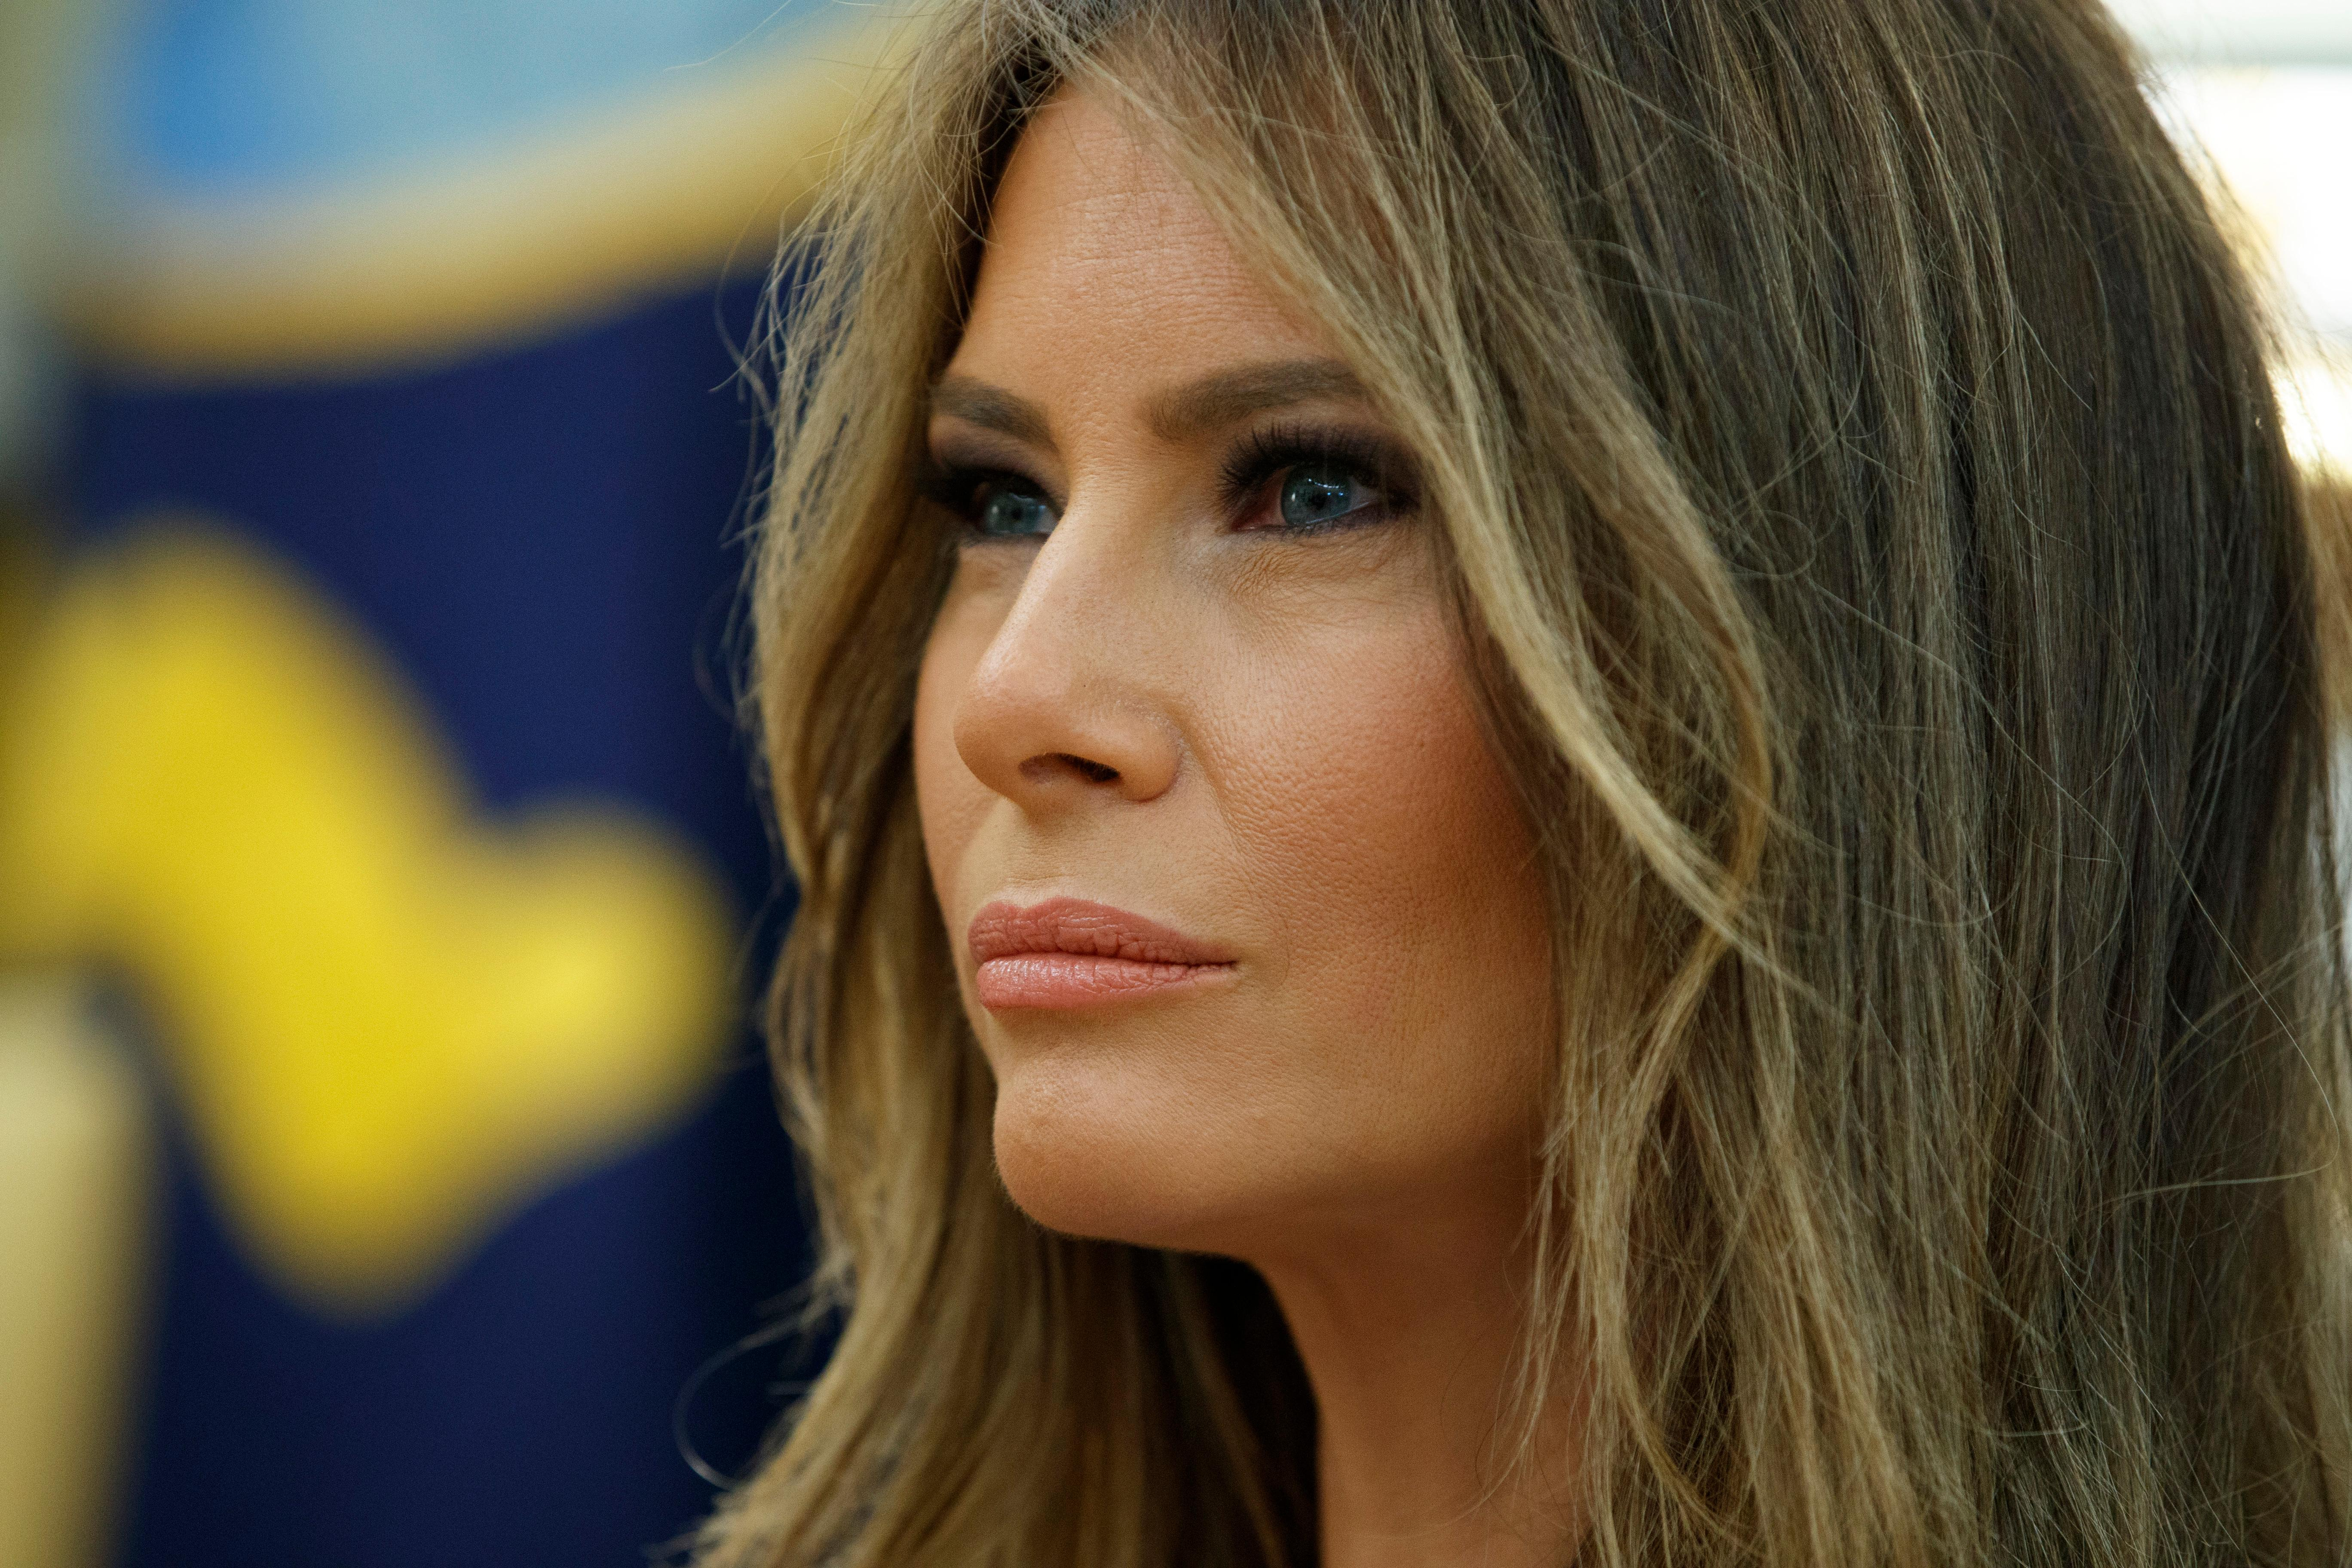 First lady Melania Trump listens during a meeting between President Donald Trump and Panamanian President Juan Carlos Varela, Monday, June 19, 2017, in the Oval Office of the White House in Washington. (AP Photo/Evan Vucci)